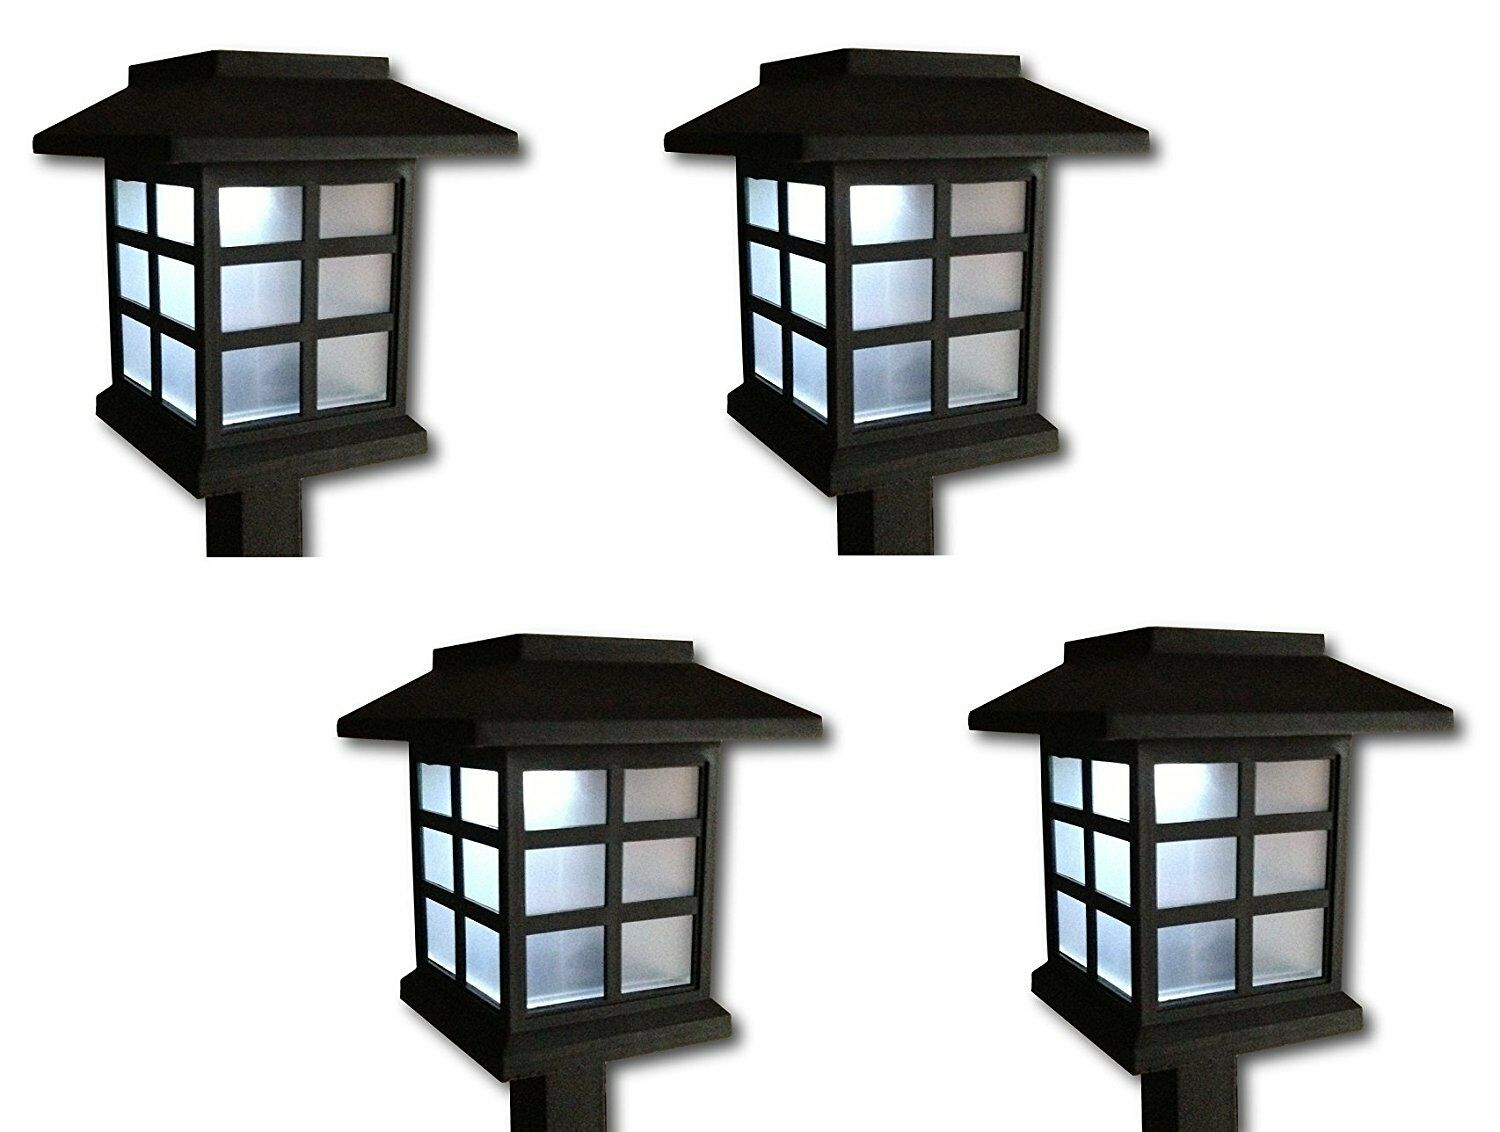 4 x led solarleuchte solarlampe solar laterne solarbeleuchtung garten licht neu eur 16 99. Black Bedroom Furniture Sets. Home Design Ideas